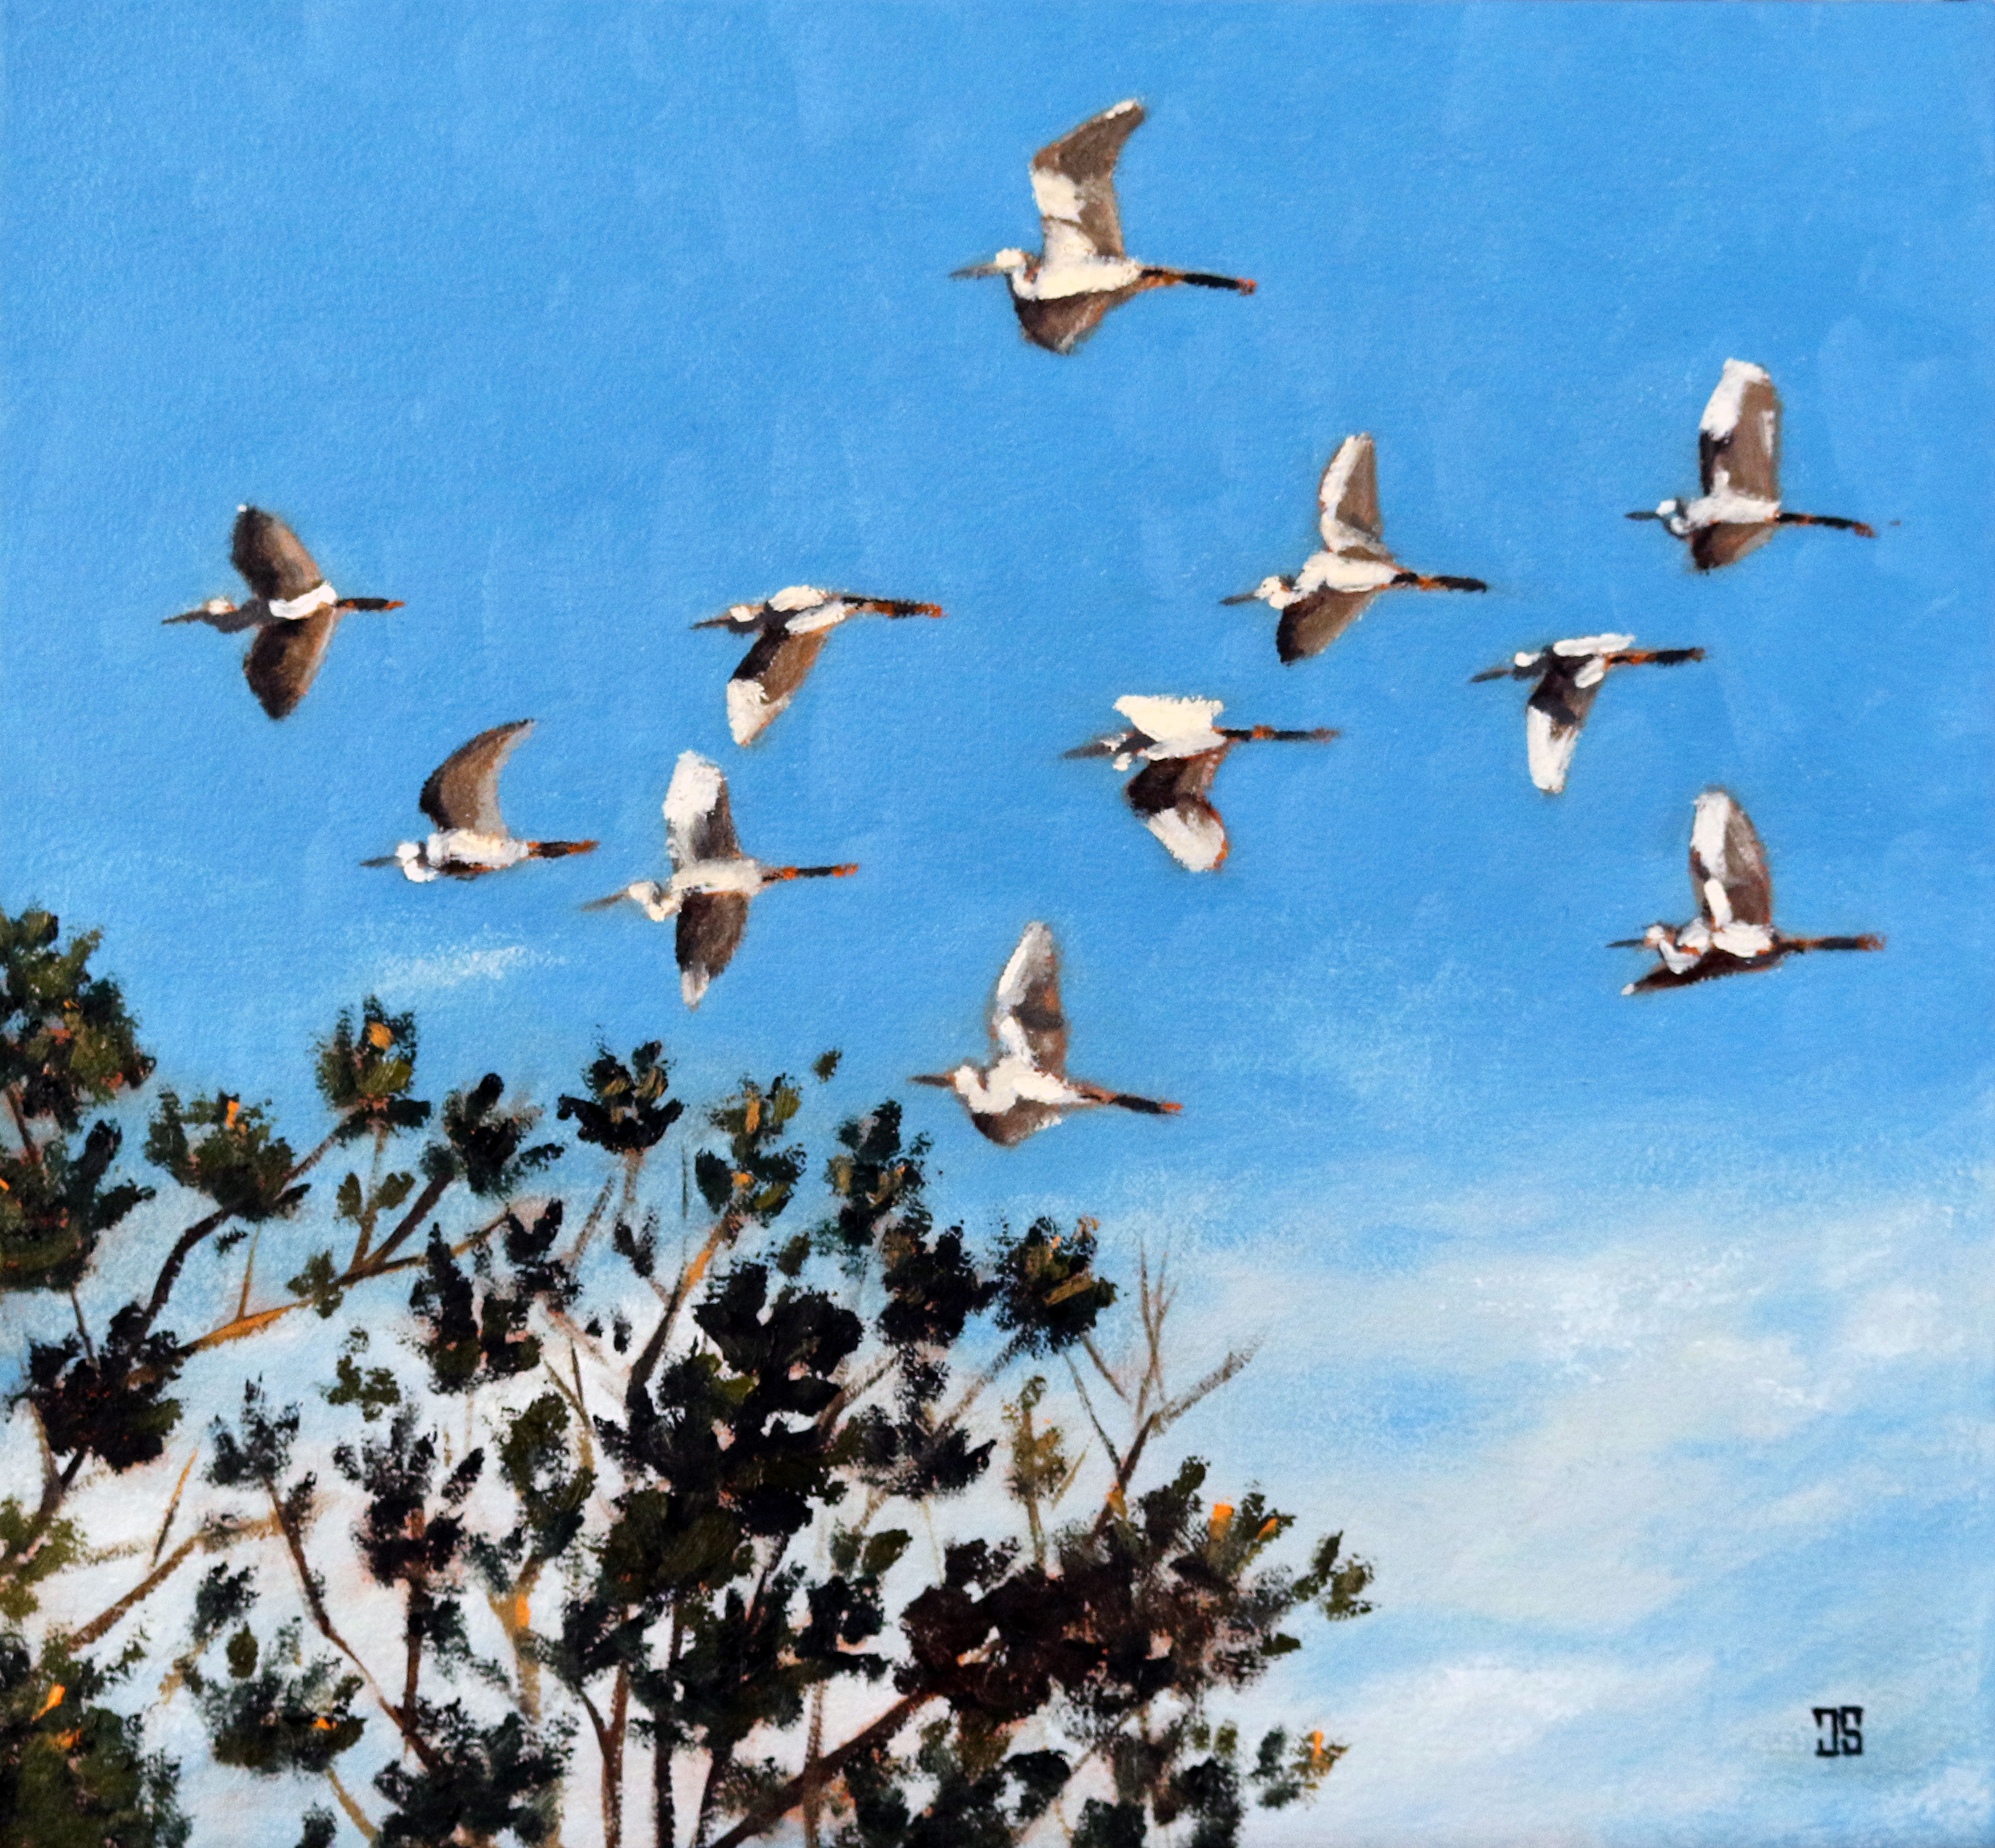 Oil painting of great egrets in flight by American artist Jeffrey Dale Starr